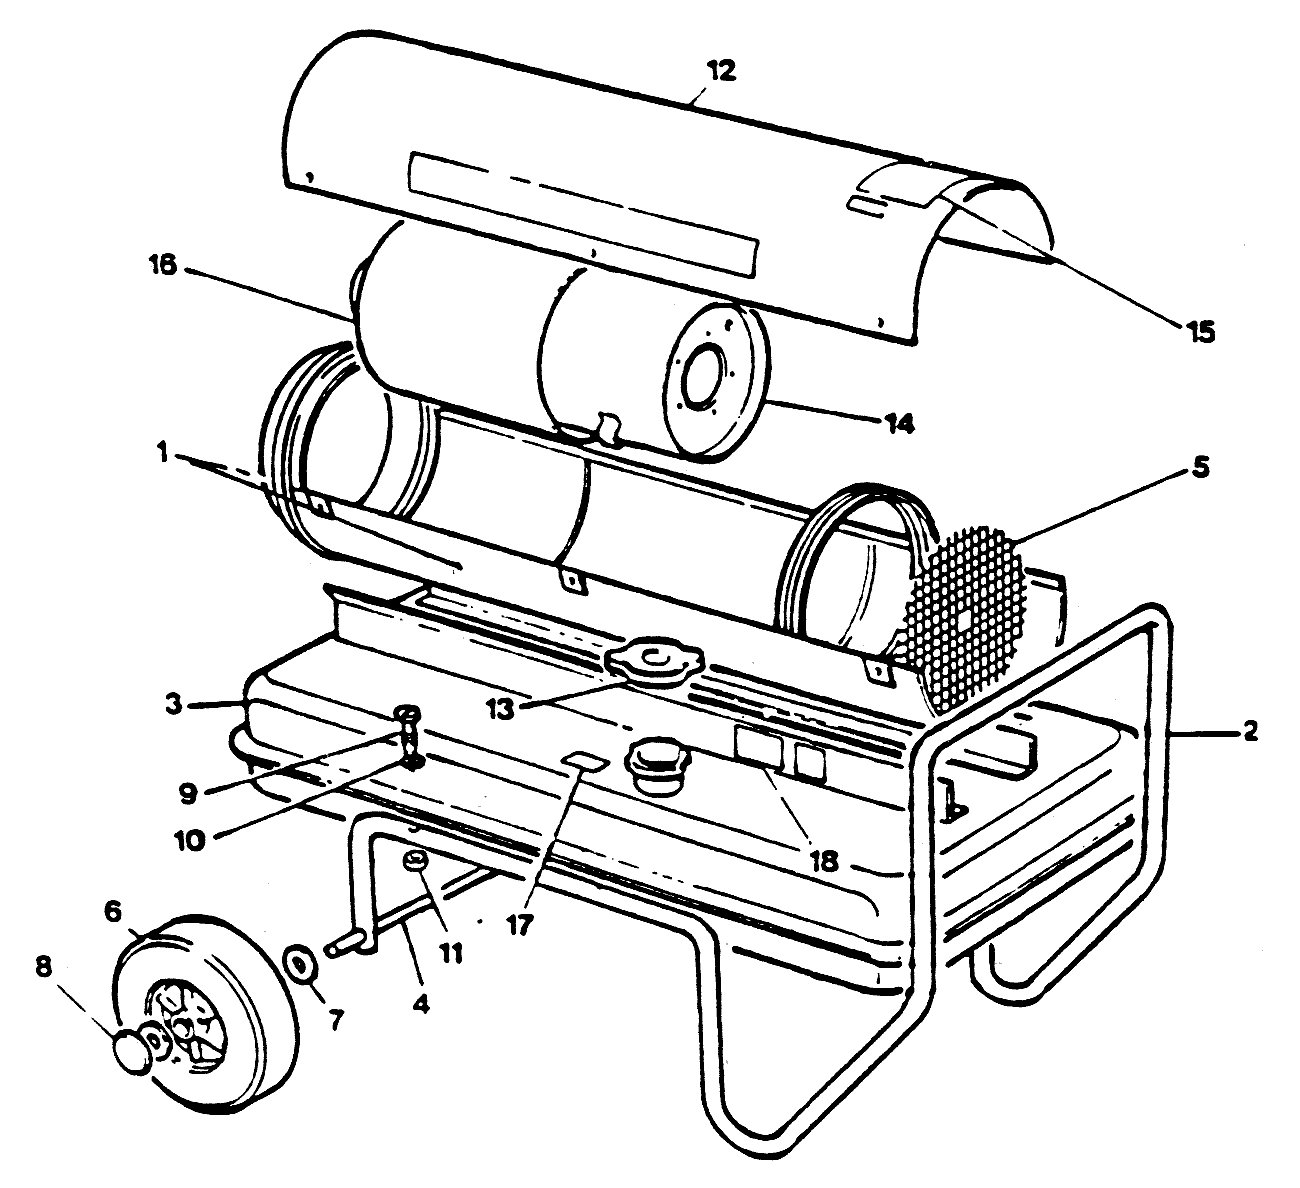 Jetaire D60 Exploded View